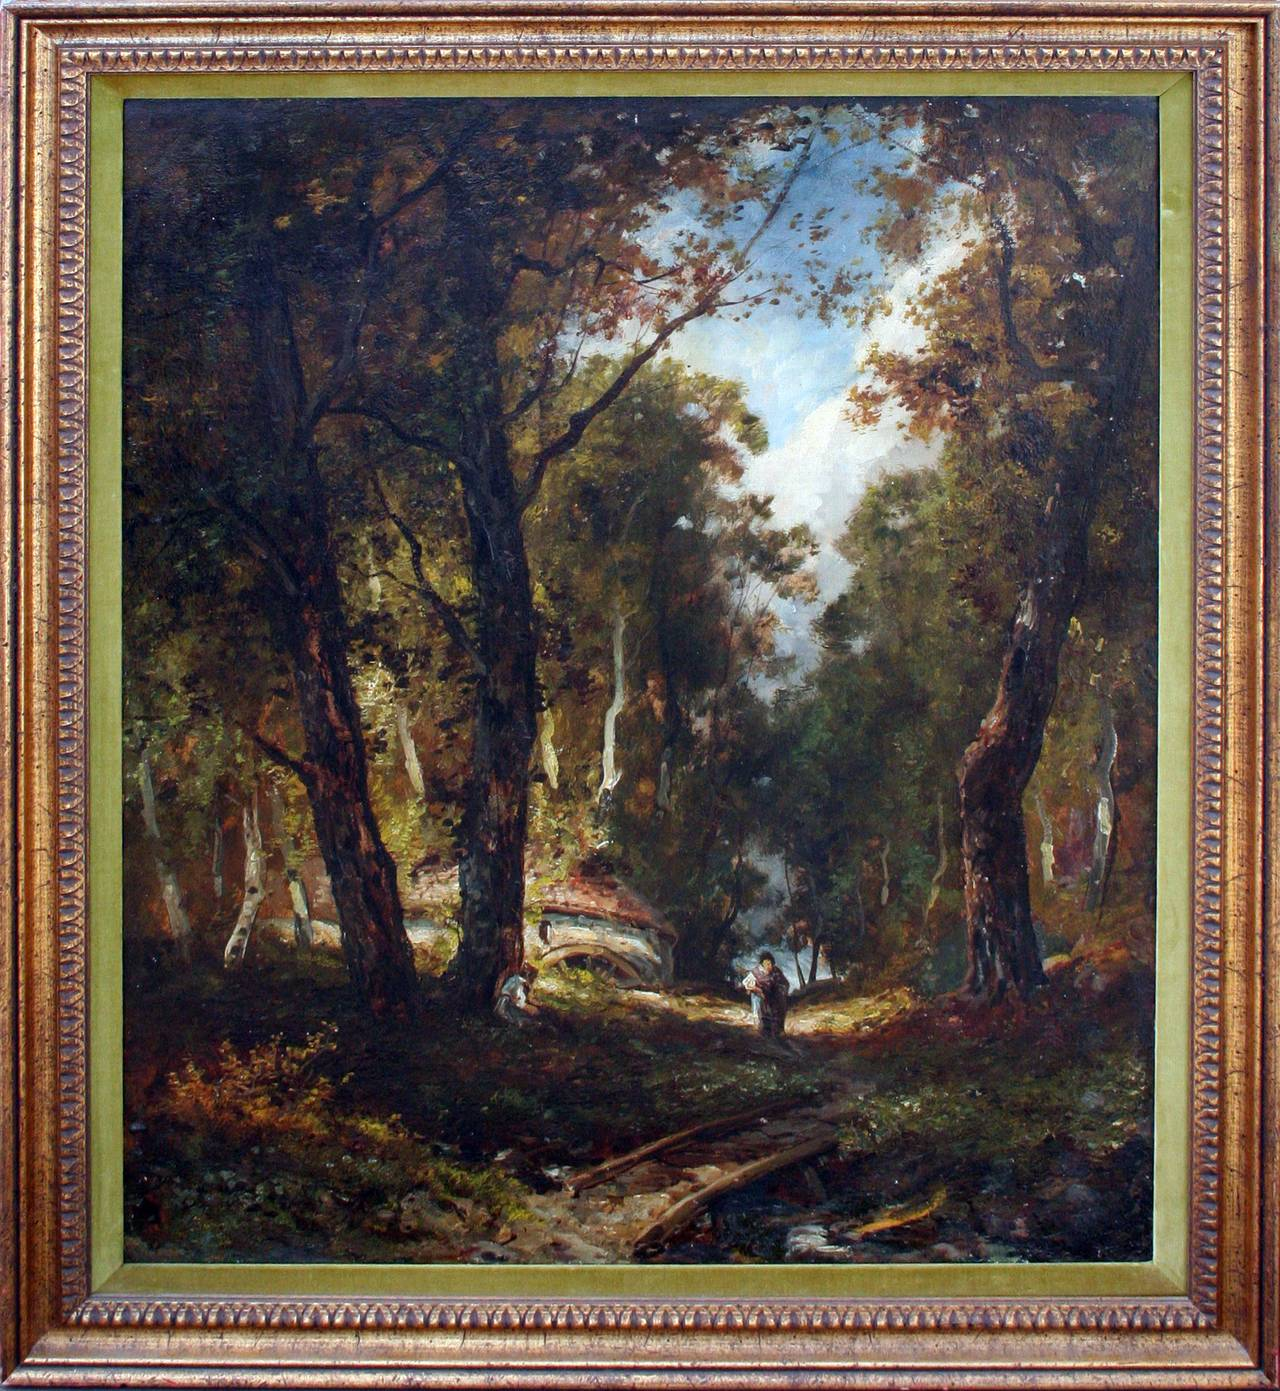 Unknown Landscape Painting -   Barbizon Foret de Chantilly: after Narcissus Diaz de la Pena